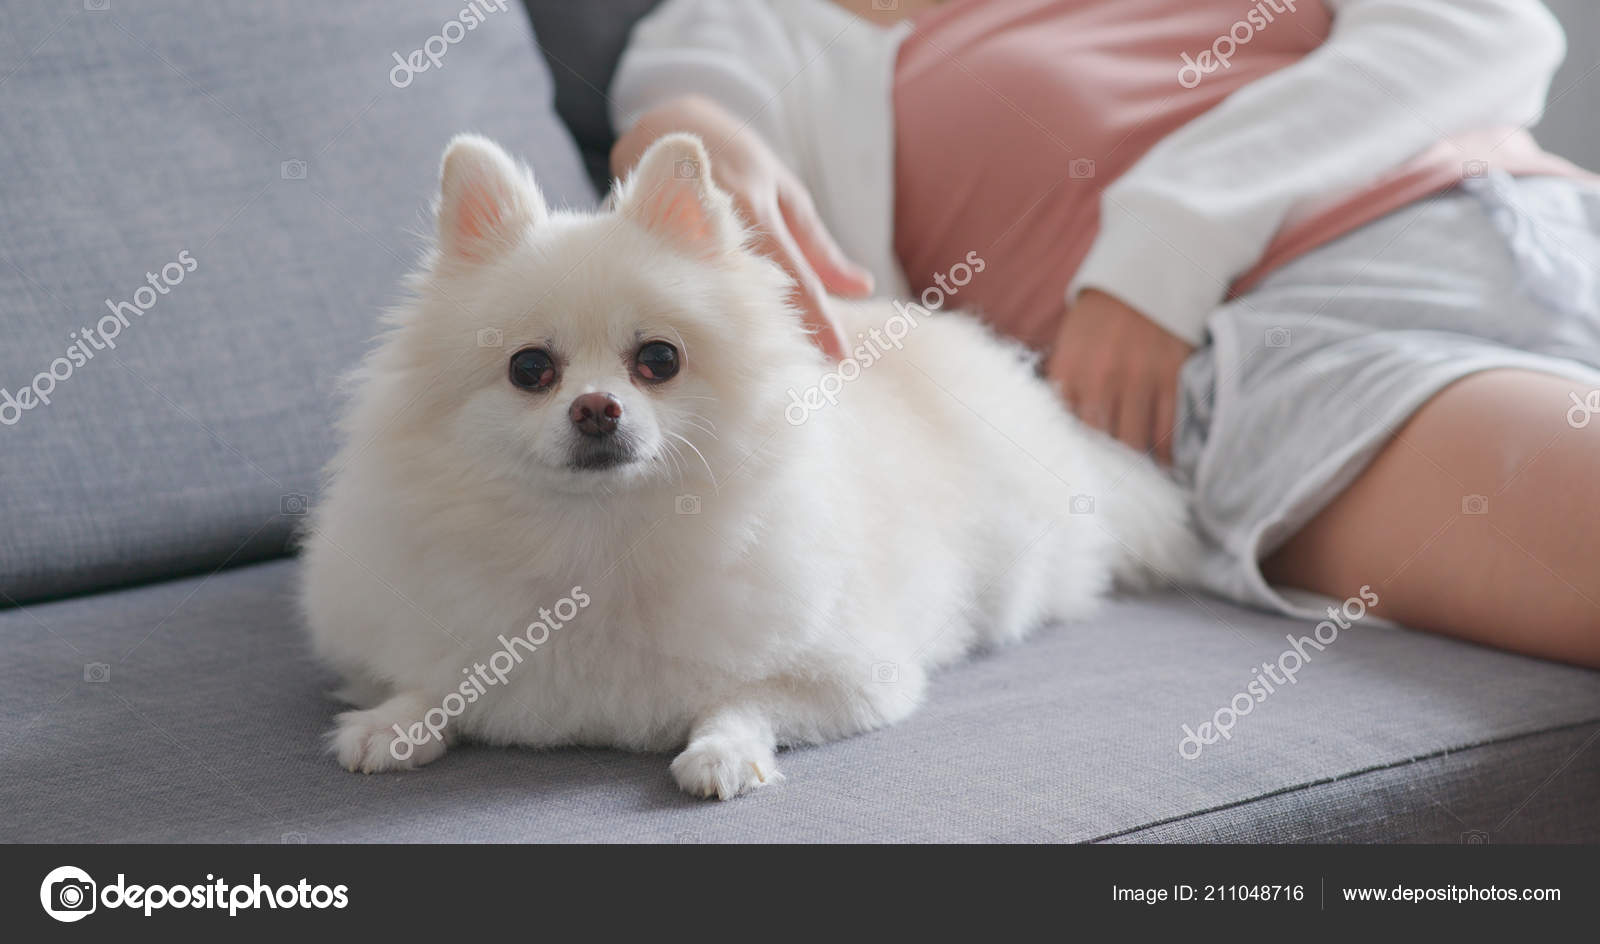 Pet Owner Touching White Pomeranian Dog Sitting Couch Stock Photo